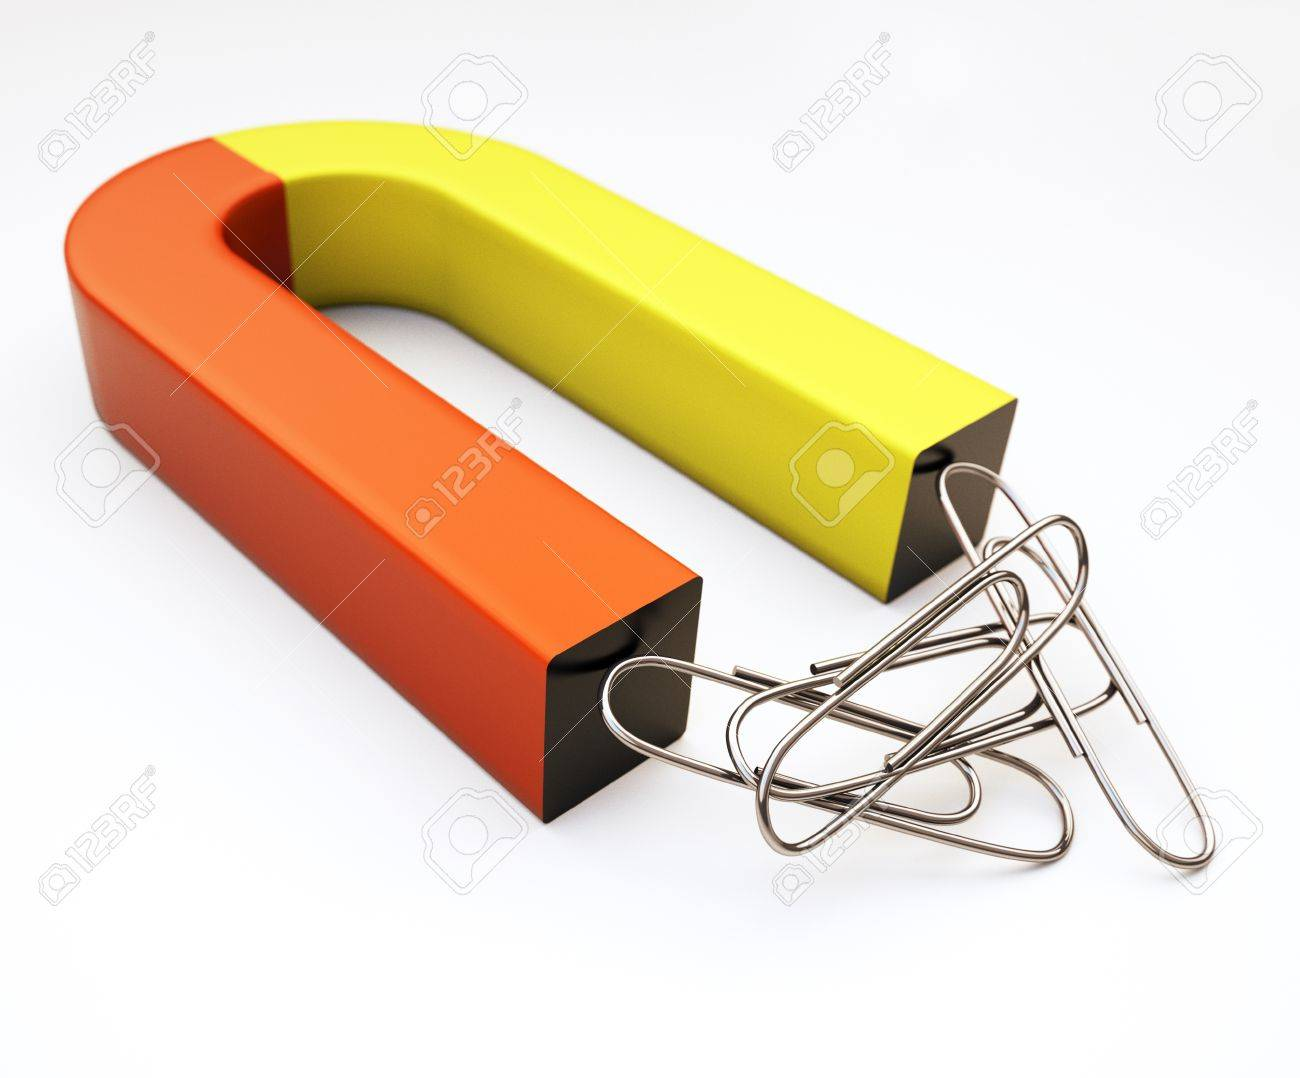 Magnet And Paper Clip Isolated On White Stock Photo, Picture And ...